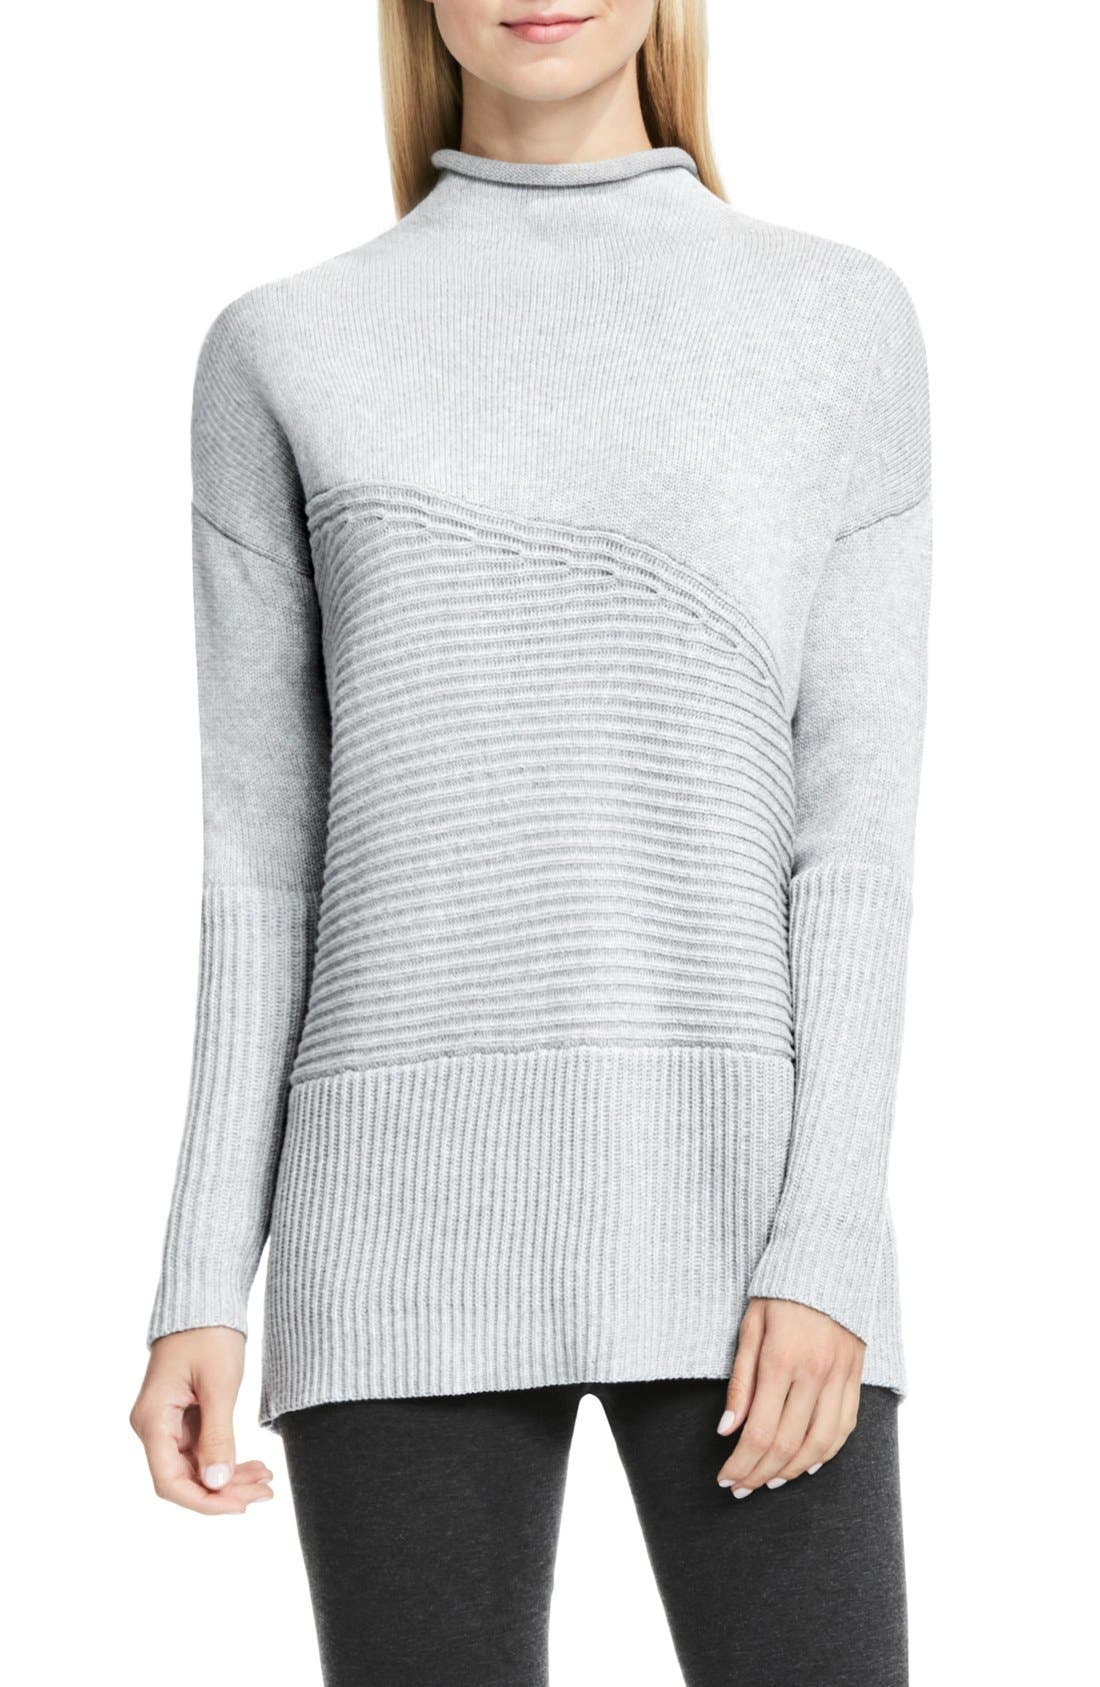 Alternate Image 1 Selected - Vince Camuto Rib Knit Turtleneck Sweater (Regular & Petite)